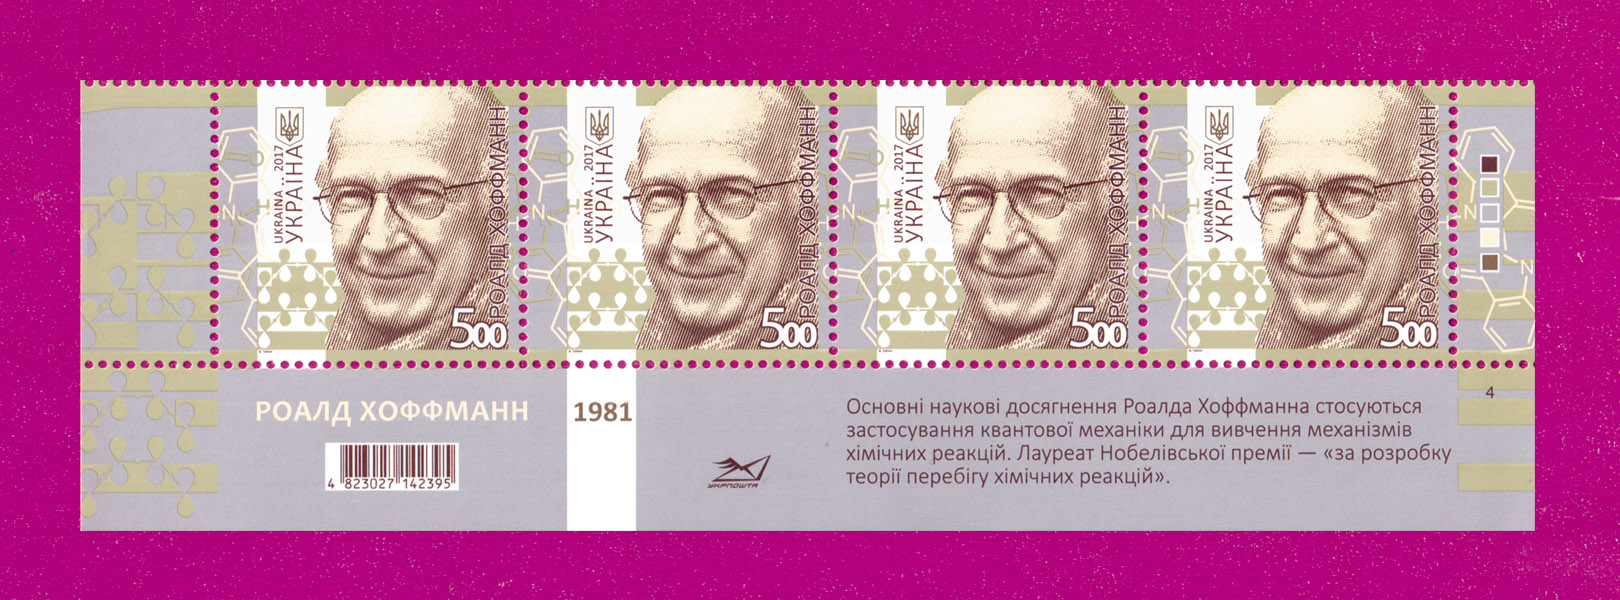 Ukraine stamps Part of the sheetlet Nobel Prize Winner Roald Hoffmann DOWN